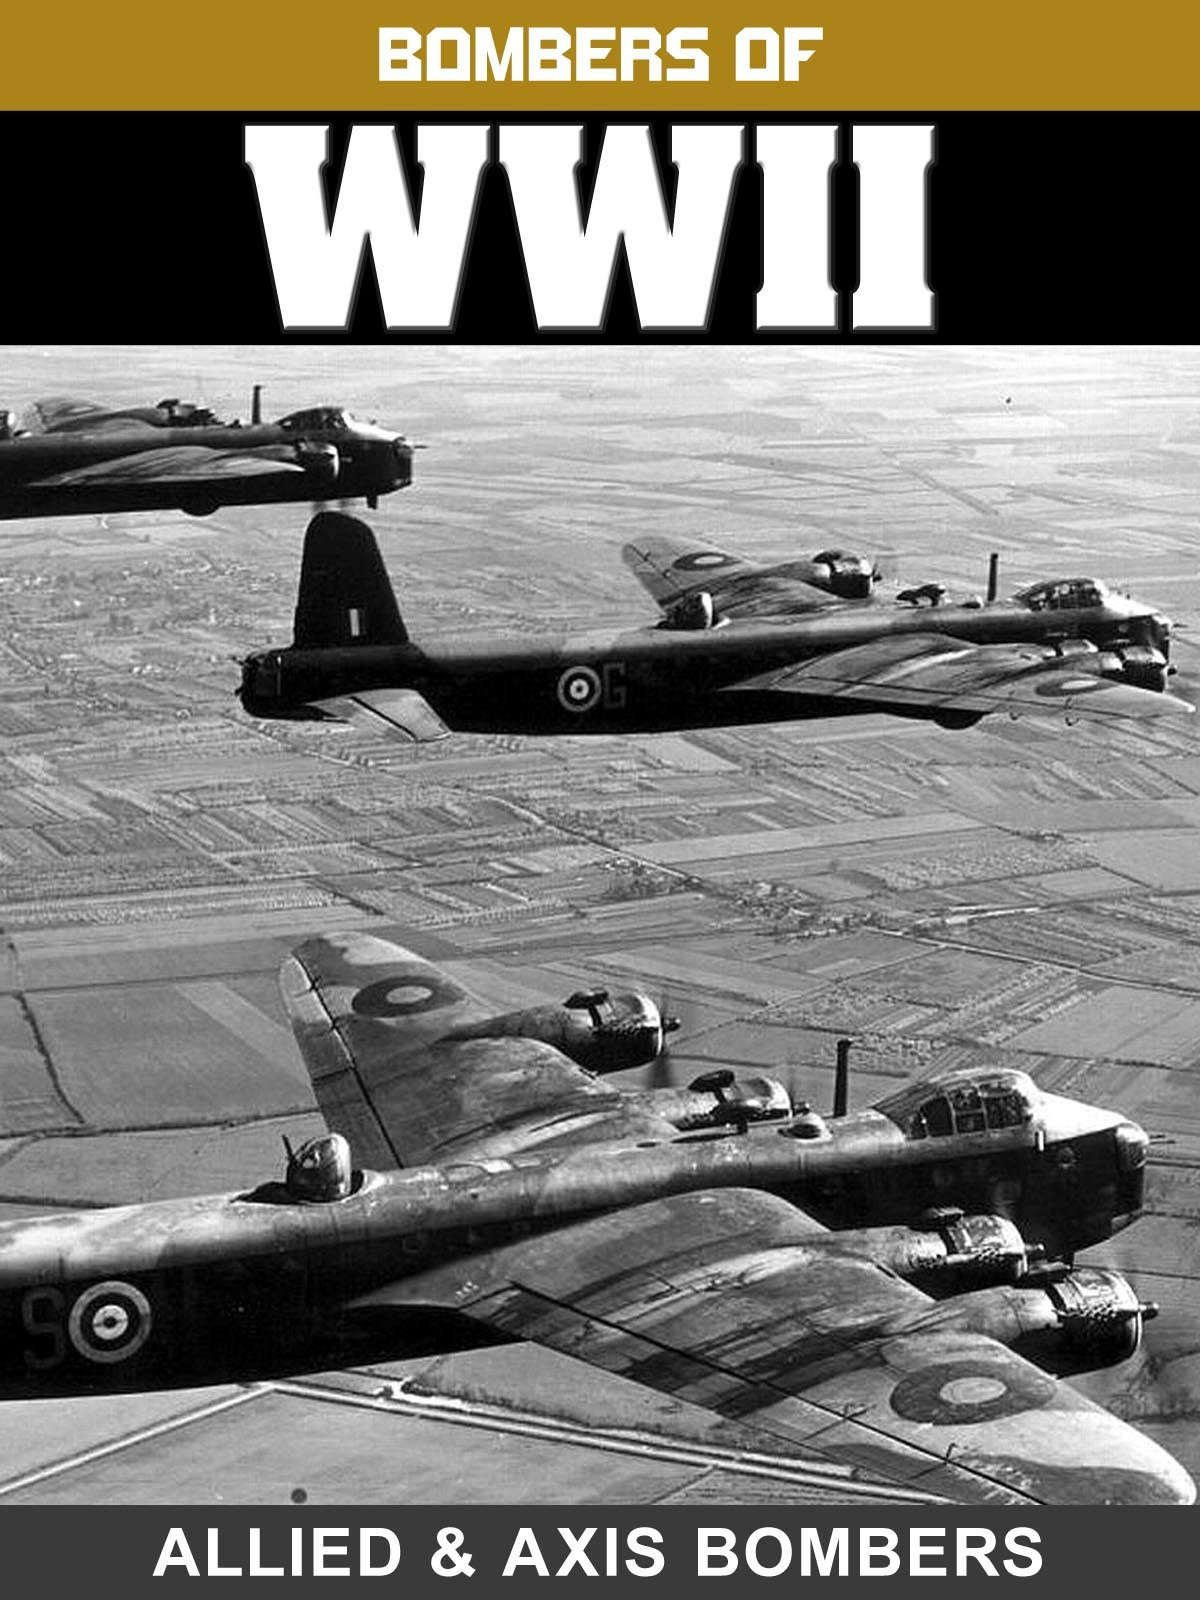 Bombers of WWII: Allied & Axis Bombers